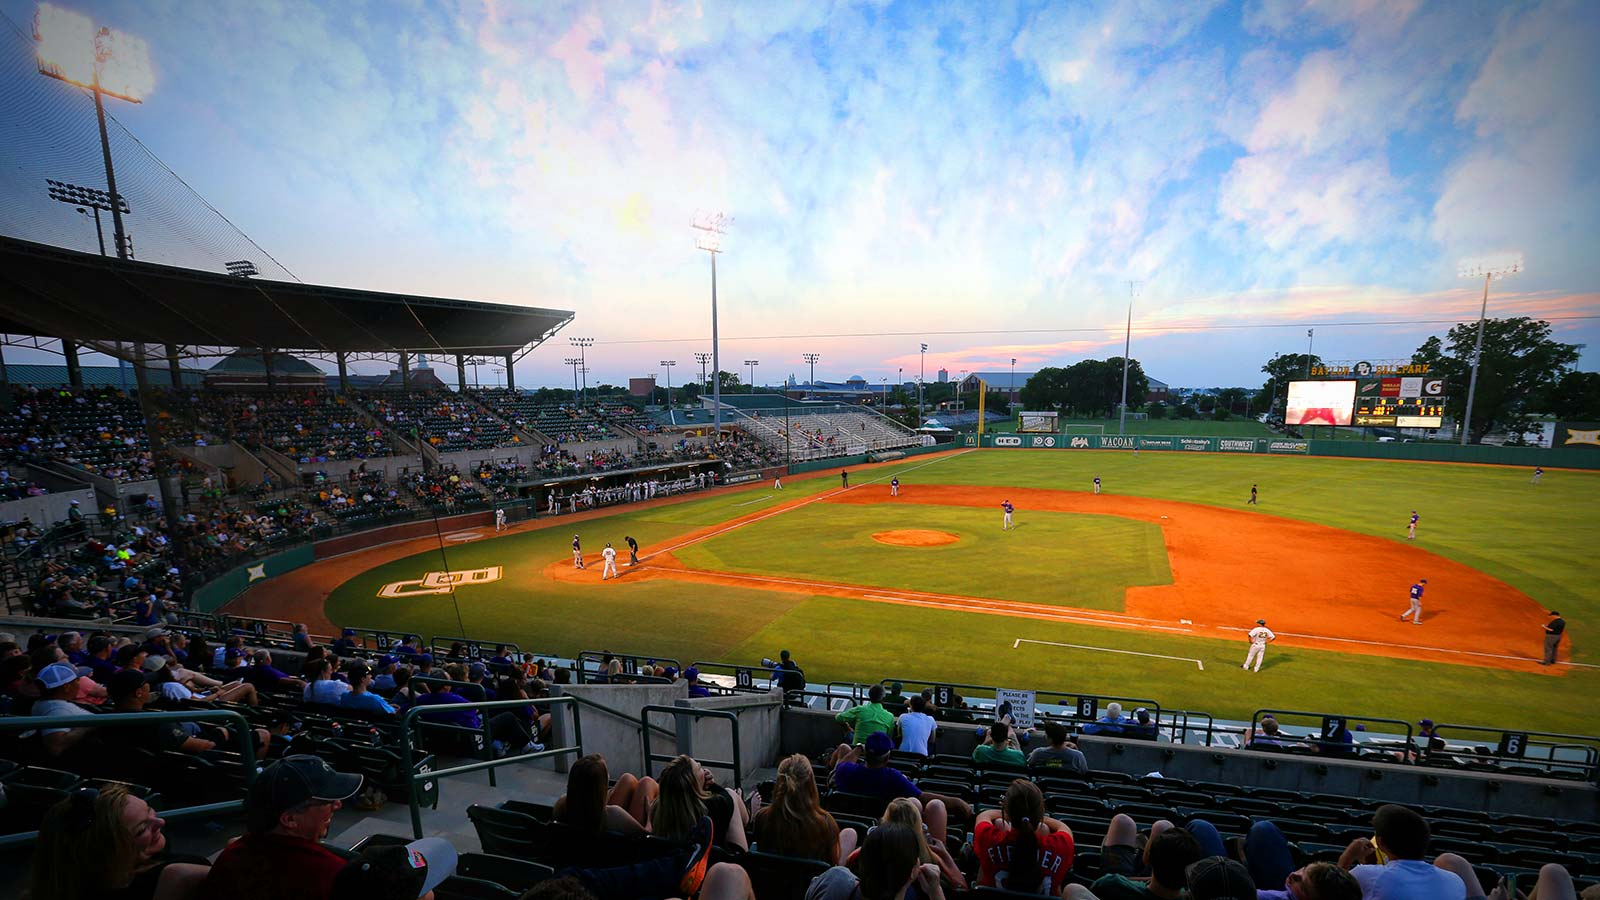 Opened in 1999, Baylor Ballpark (part of the Turner Riverfront Complex) is one of the finest collegiate baseball facilities in the nation.